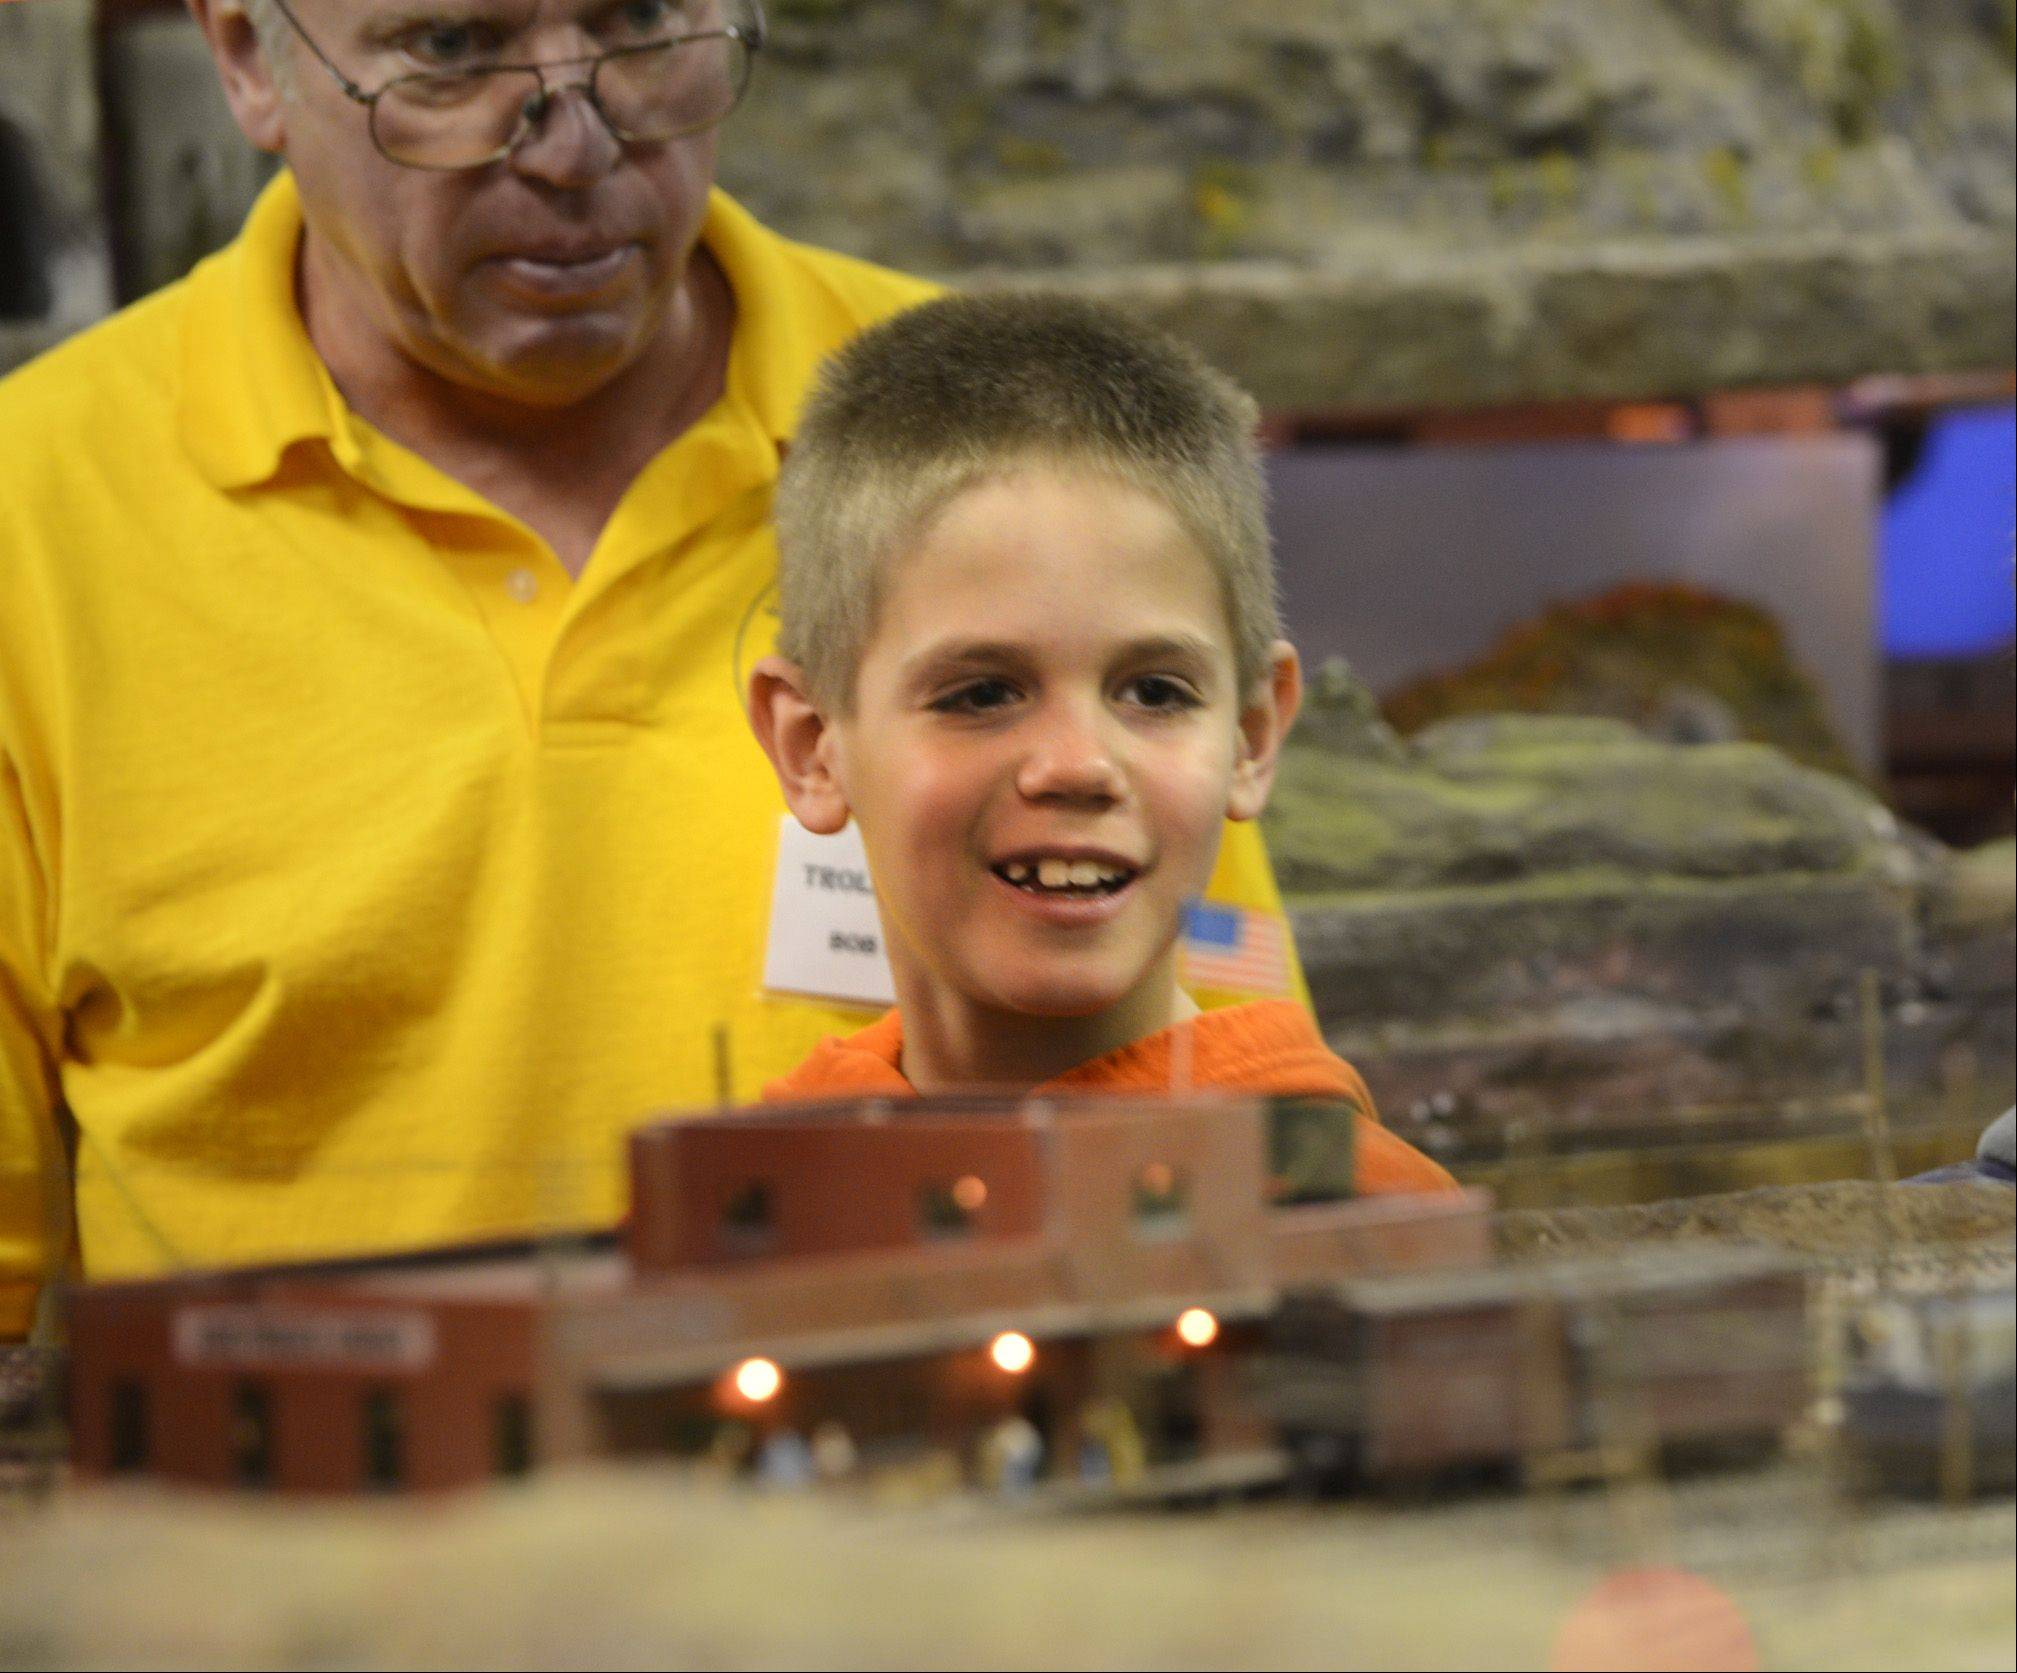 Nathan Sonehocker, 9, of Aurora, watches model trains run on 400 feet of track Sunday at the Valley Model Railroad Club's open house in South Elgin.